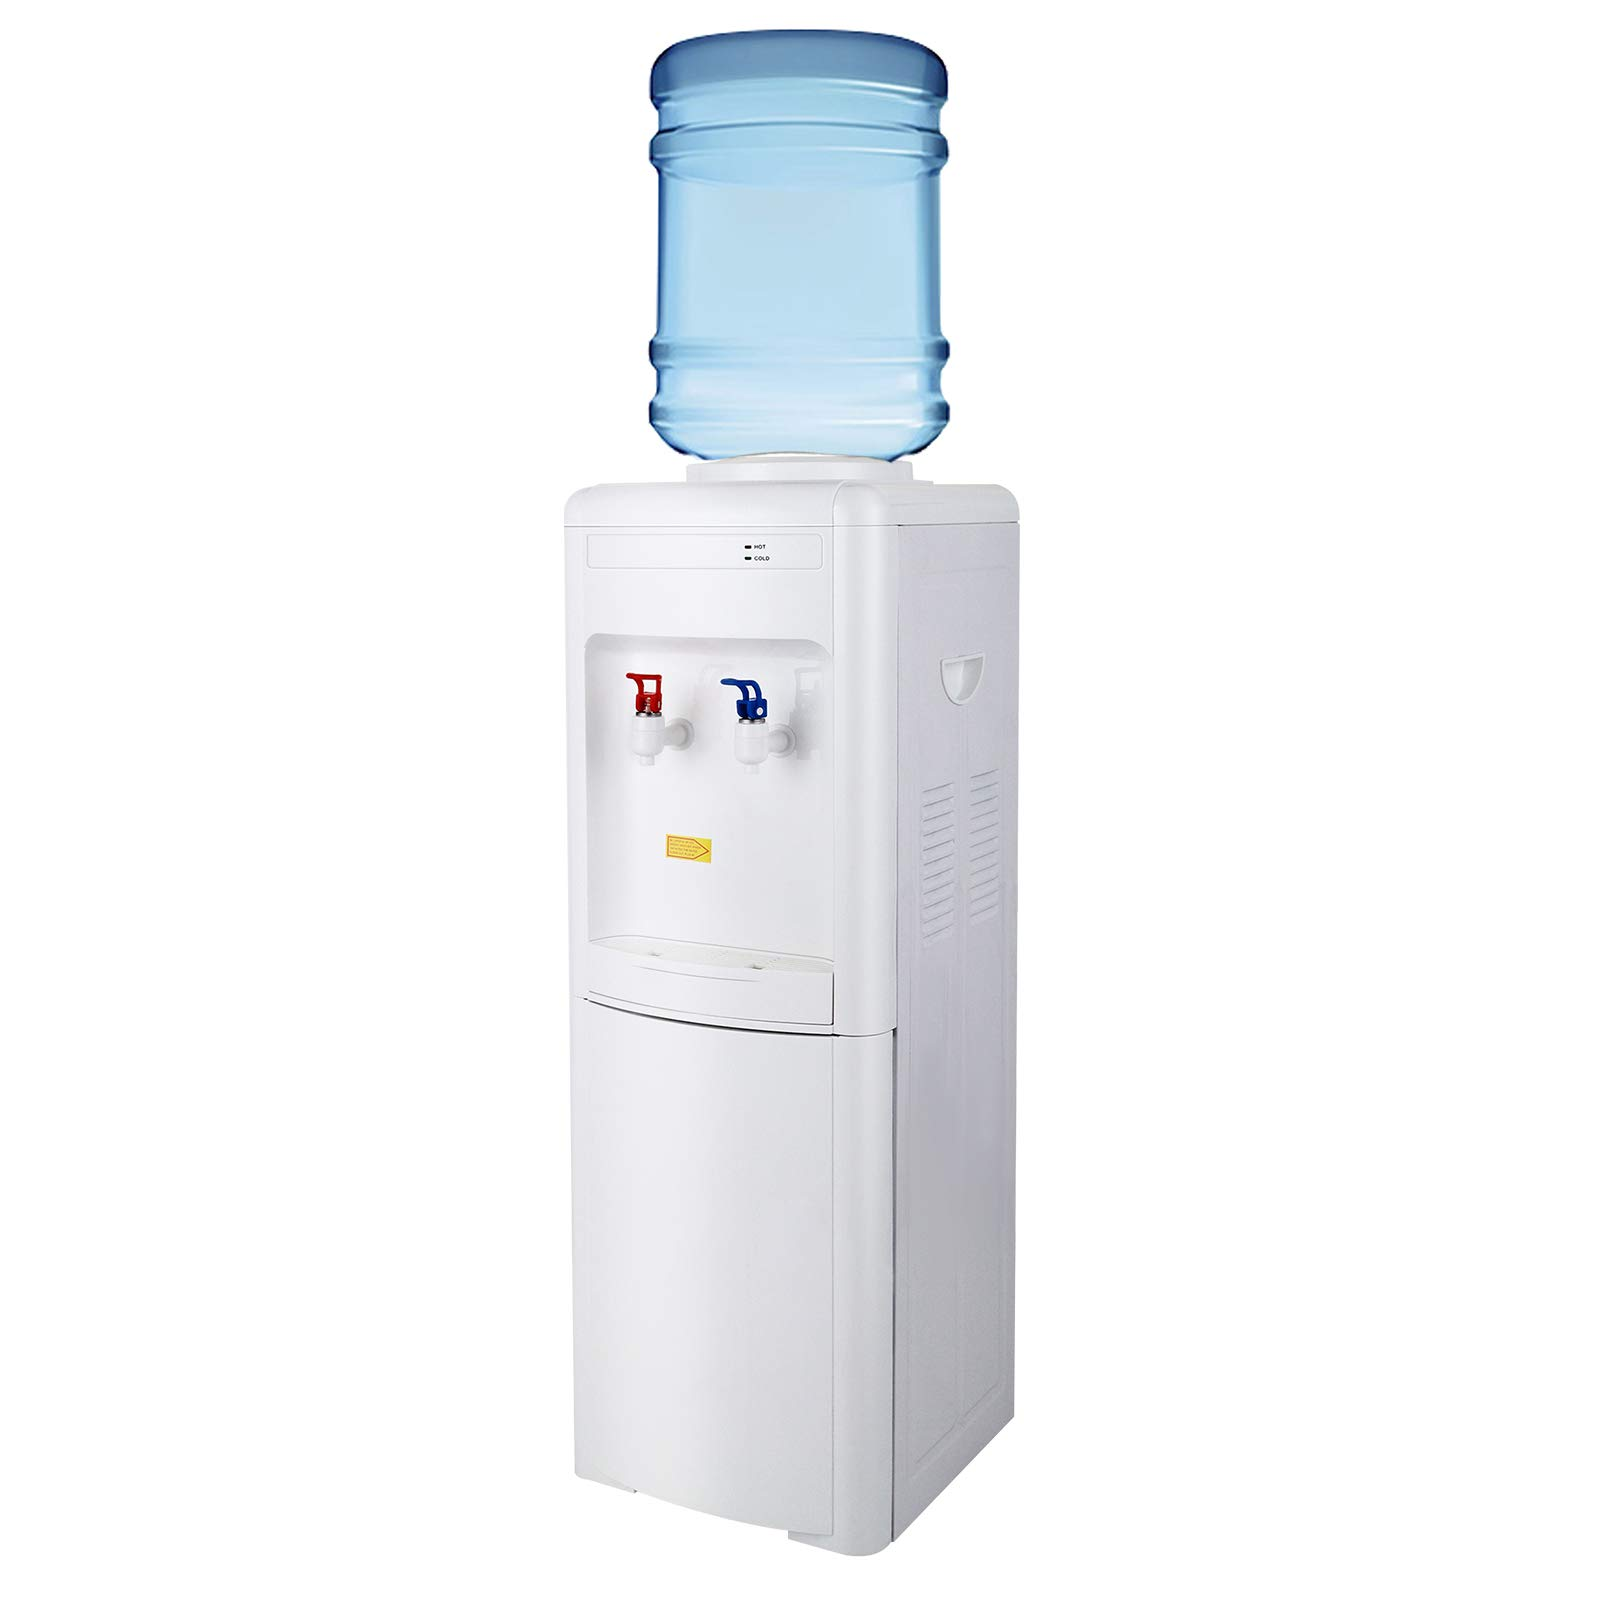 KUPPET Water Cooler Dispenser Top Loading Freestanding Water Dispenser with Storage Cabinet, Two Temperature Settings-Hot(85℃-95℃), Normal Temperature(10-15℃), WHITE